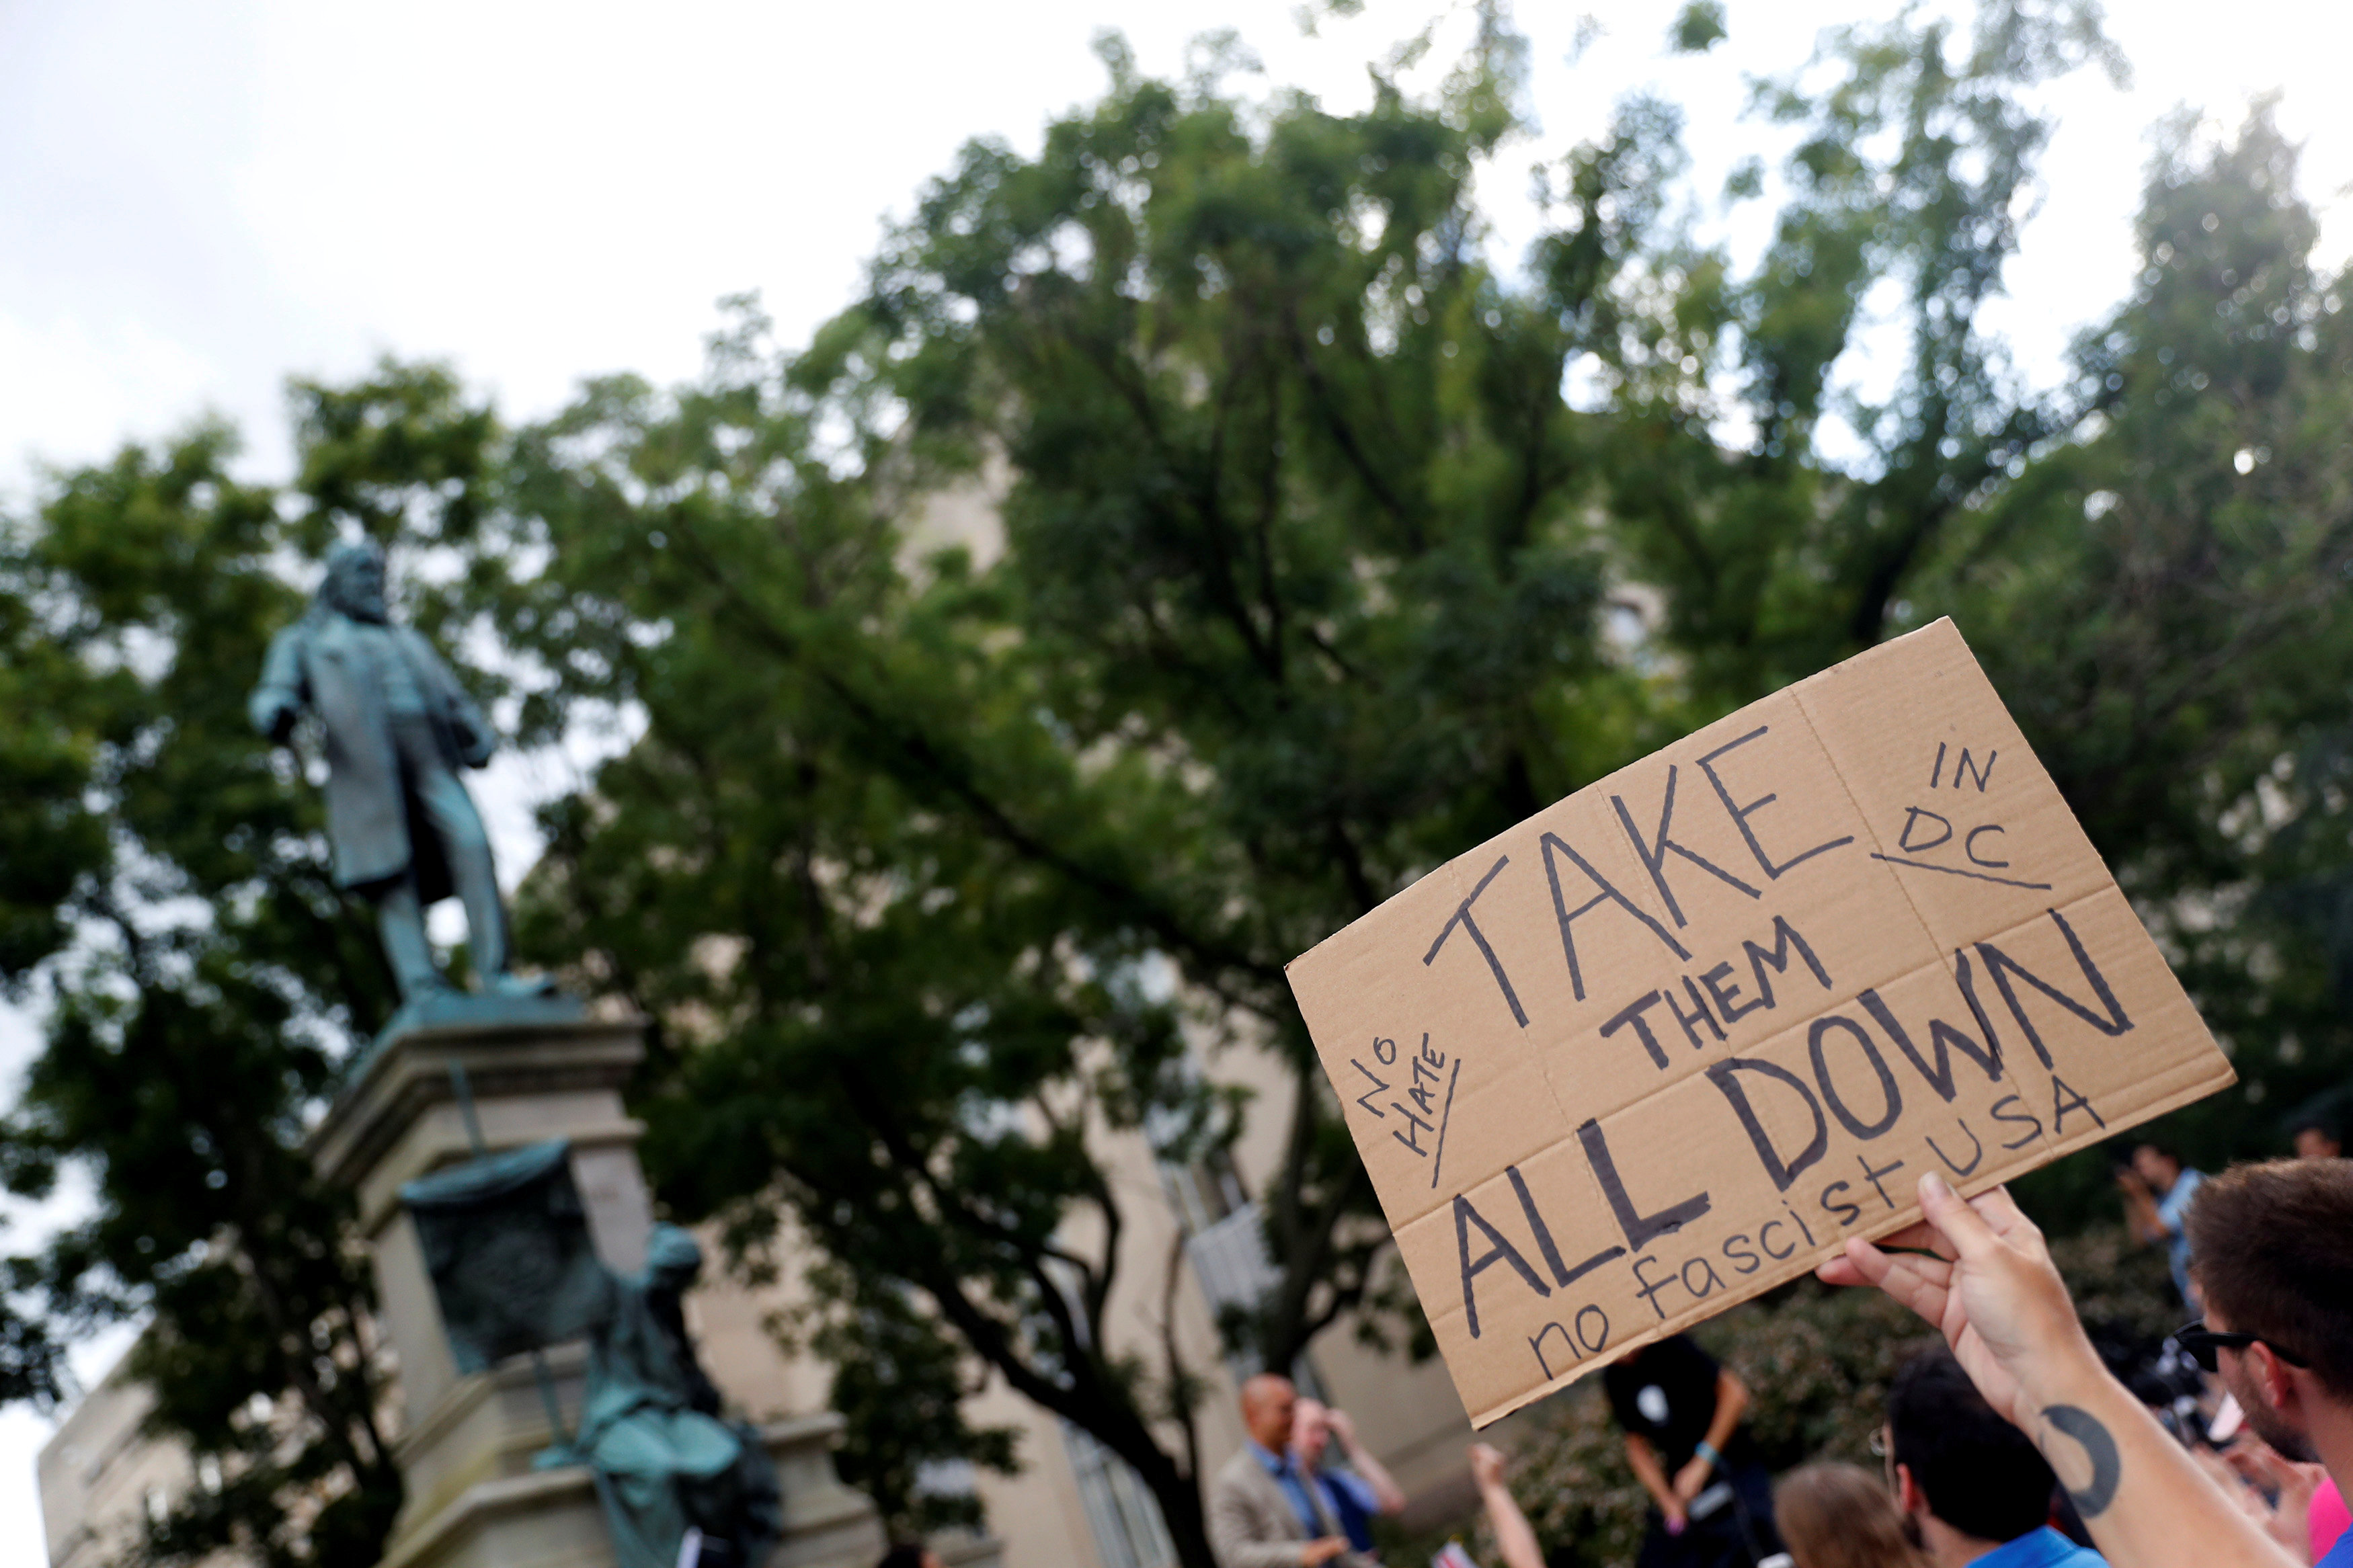 2017-08-19T004422Z_1265498377_RC19963F7D20_RTRMADP_3_USA-PROTESTS-STATUES